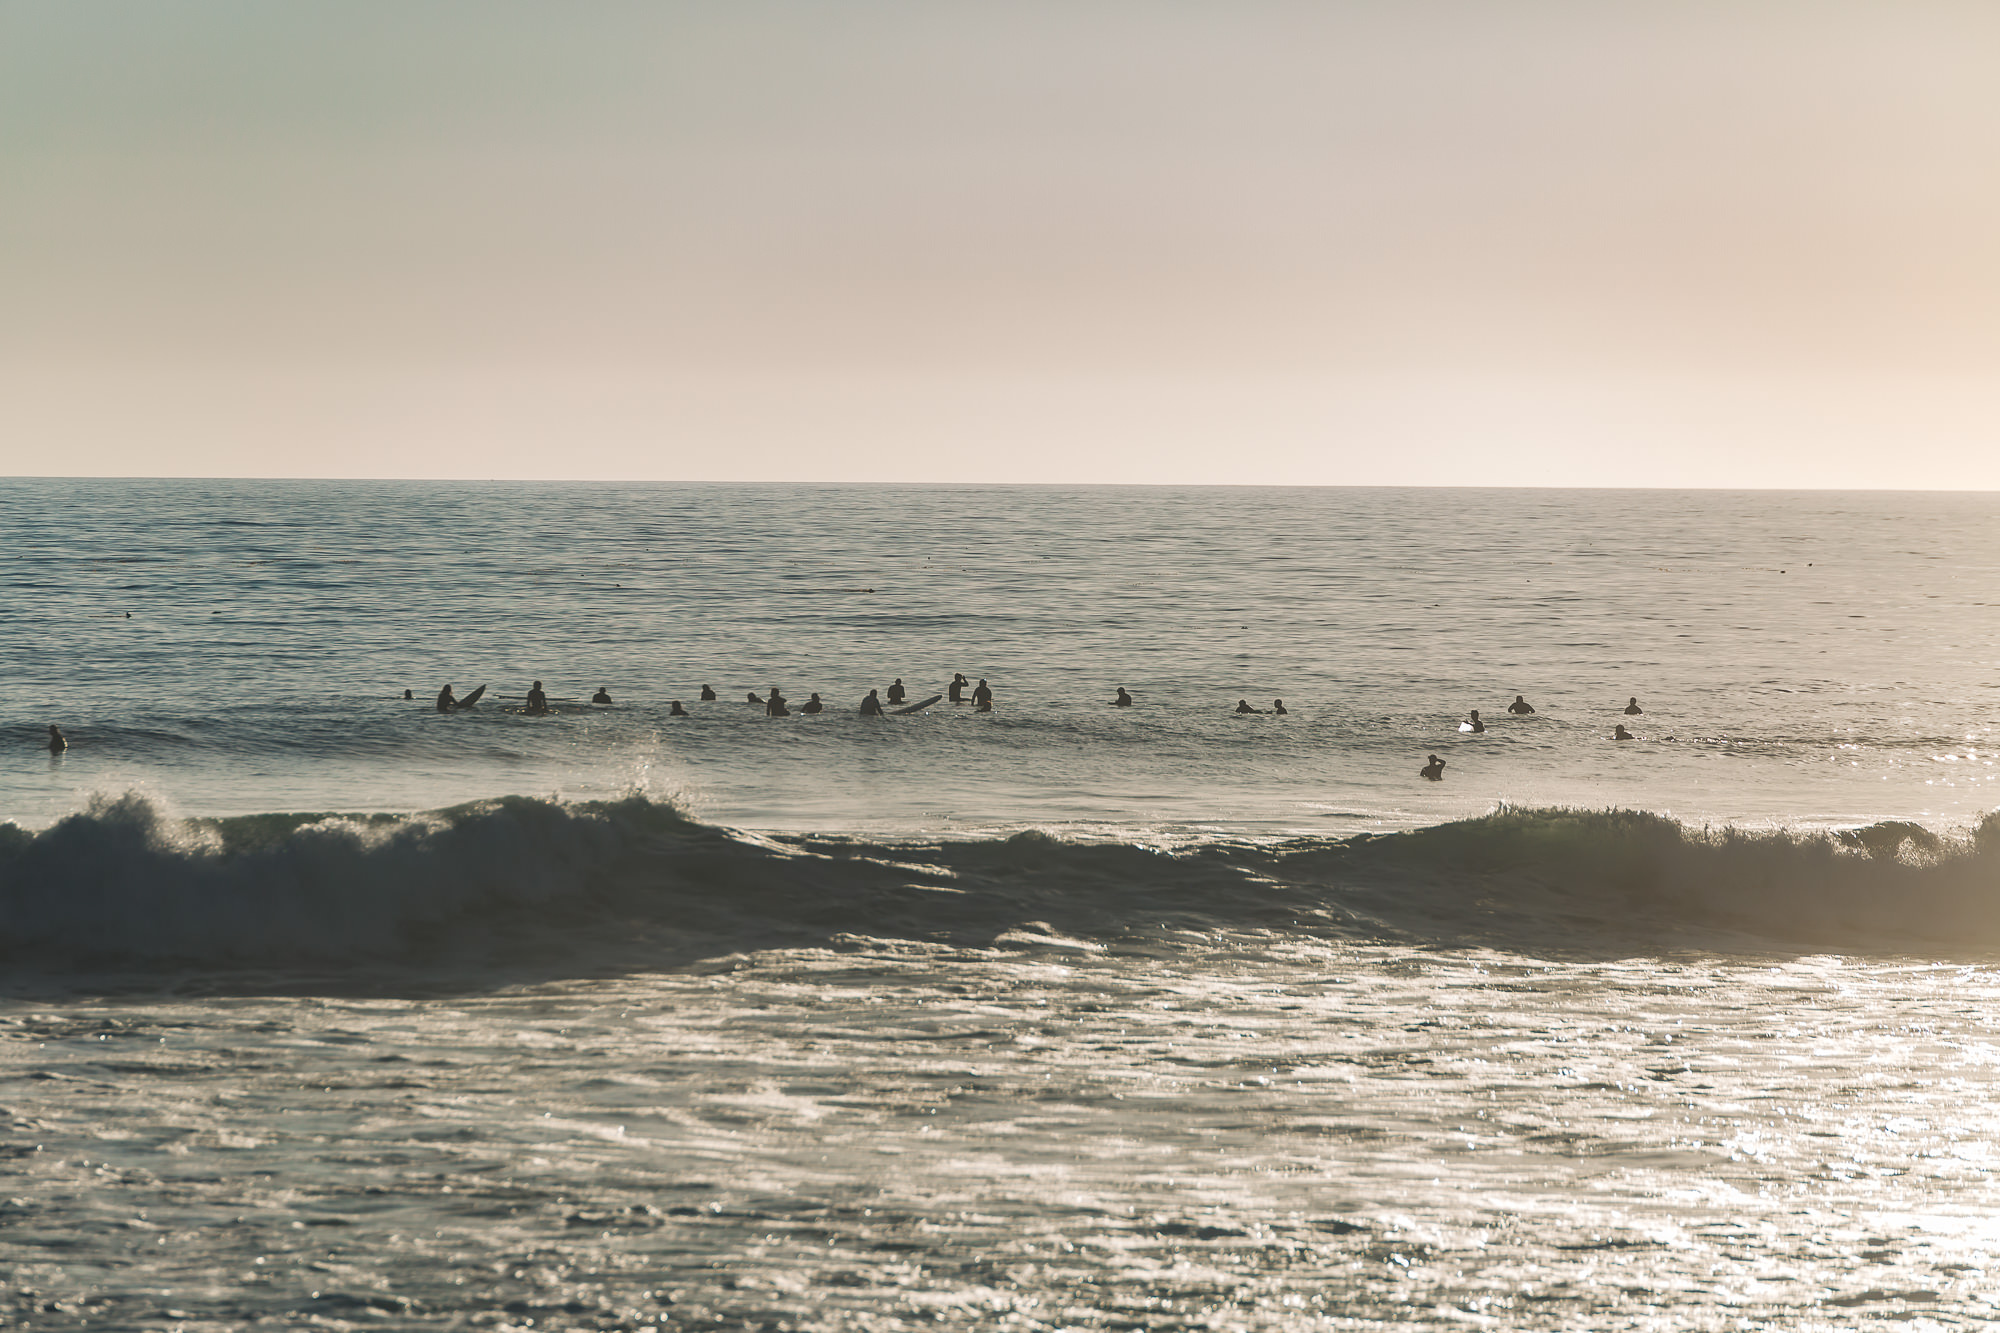 Tons of surfers at WINDANSEA BEACH IN LA JOLLA, CALIFORNIA